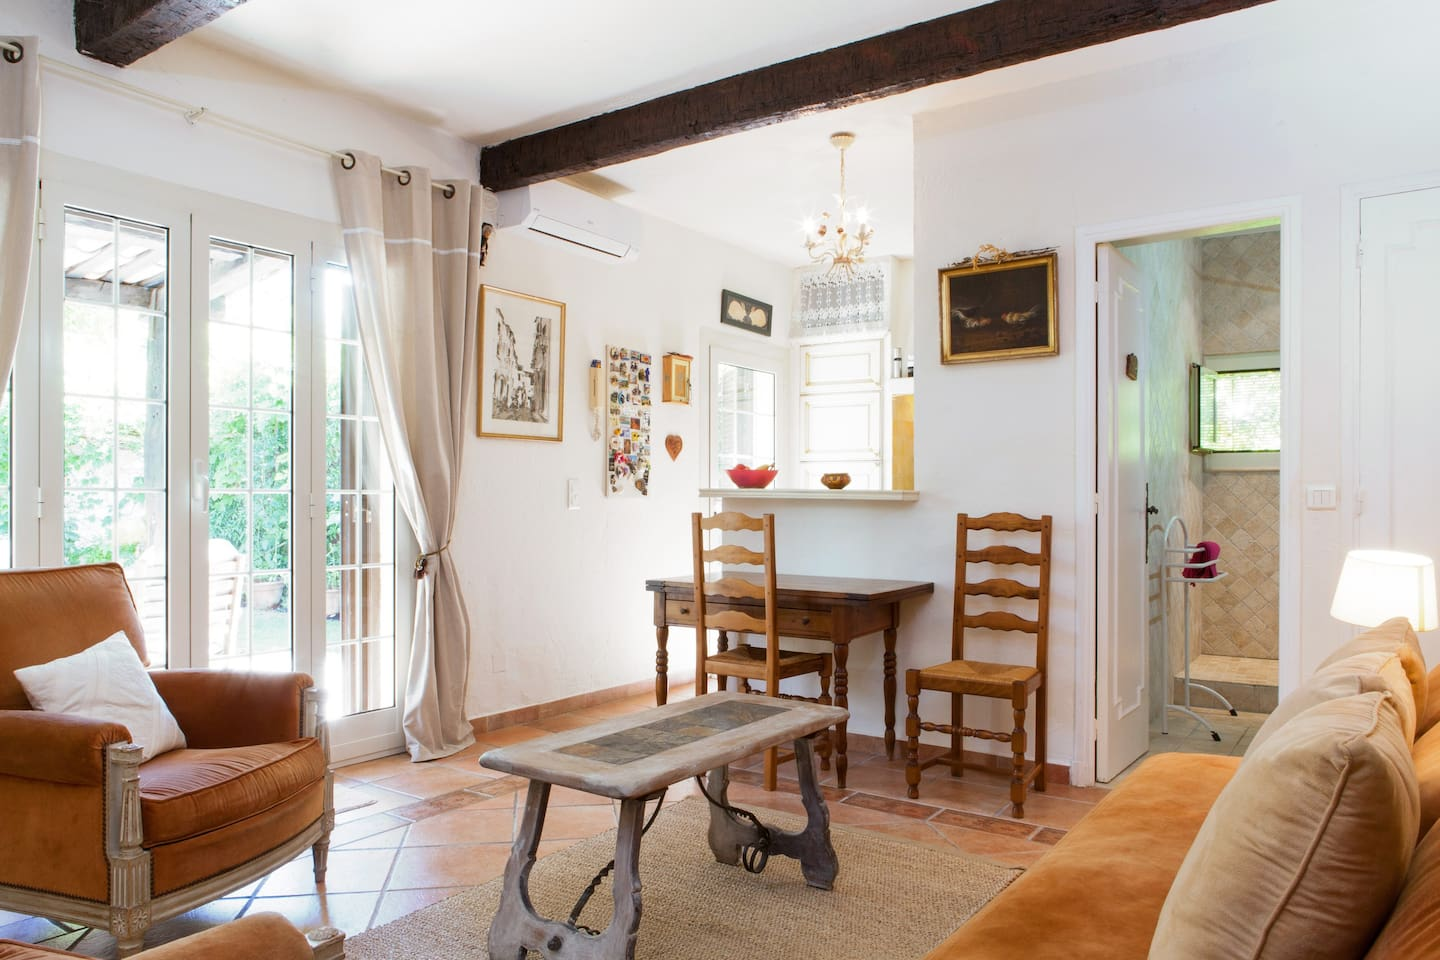 Provencal Villa in St Paul de Vence - Lofts for Rent in Saint-Paul ...